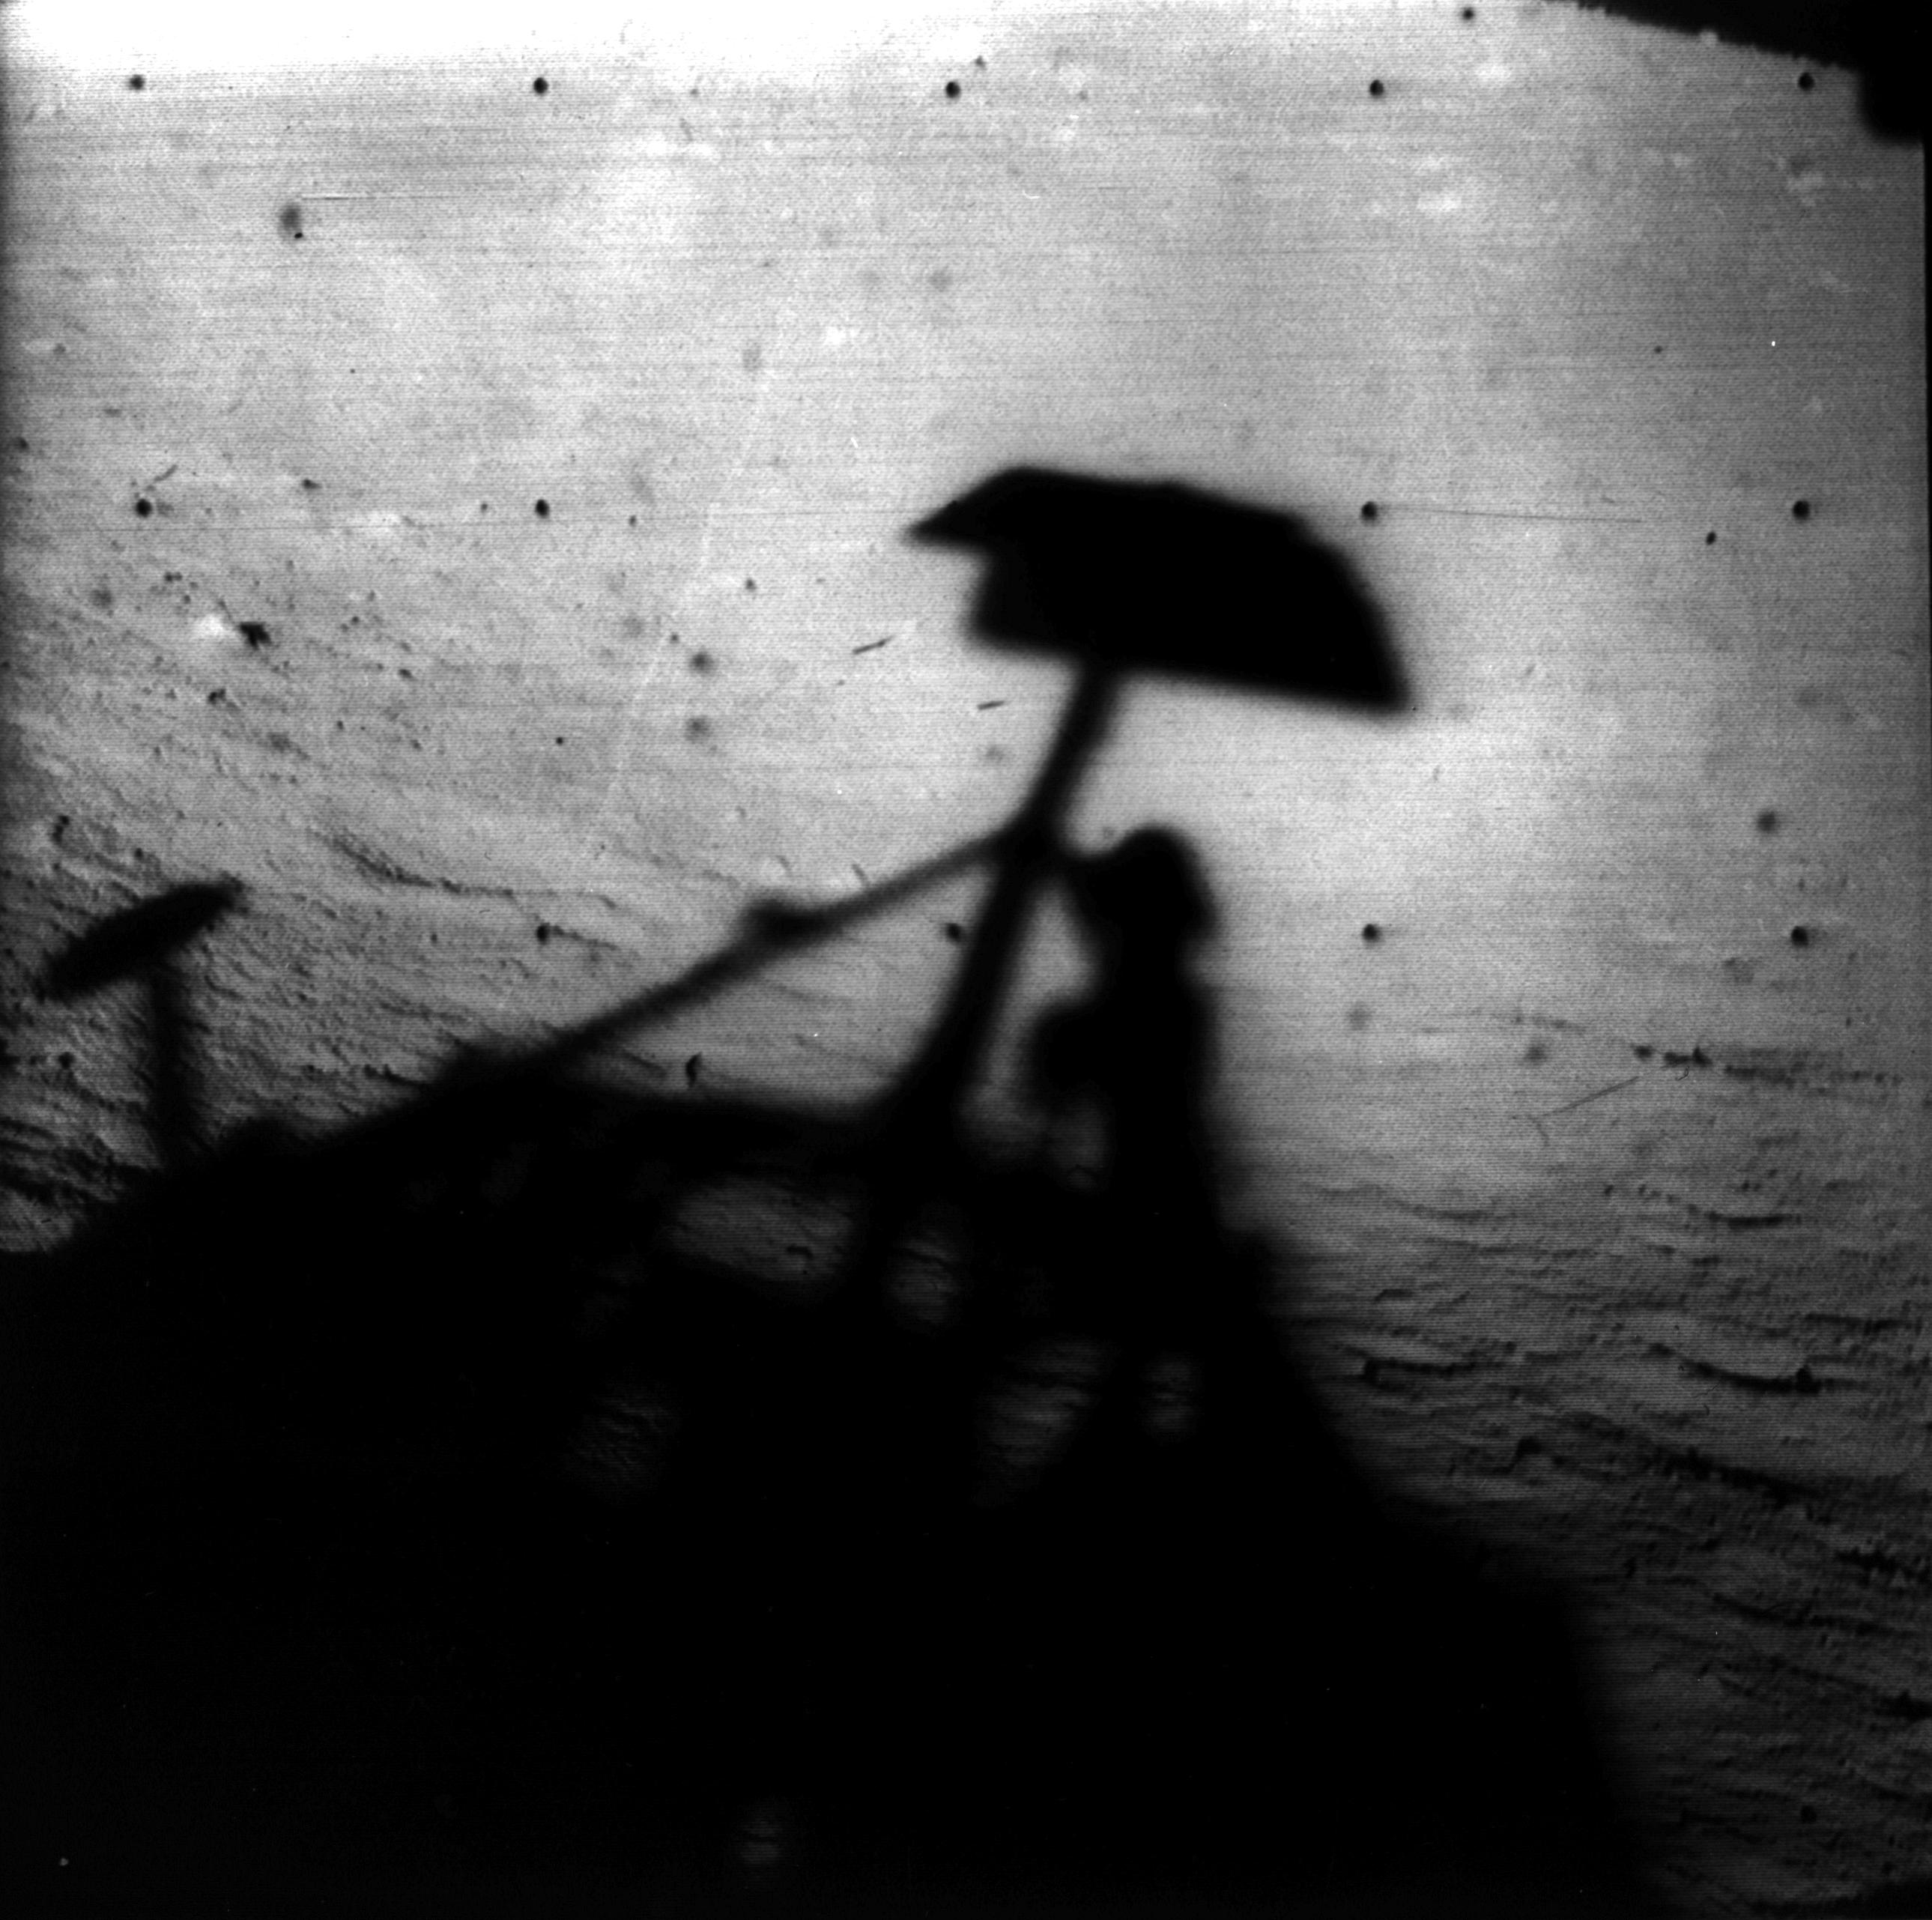 Black and white image of shadow of spacecraft on the surface of the Moon.